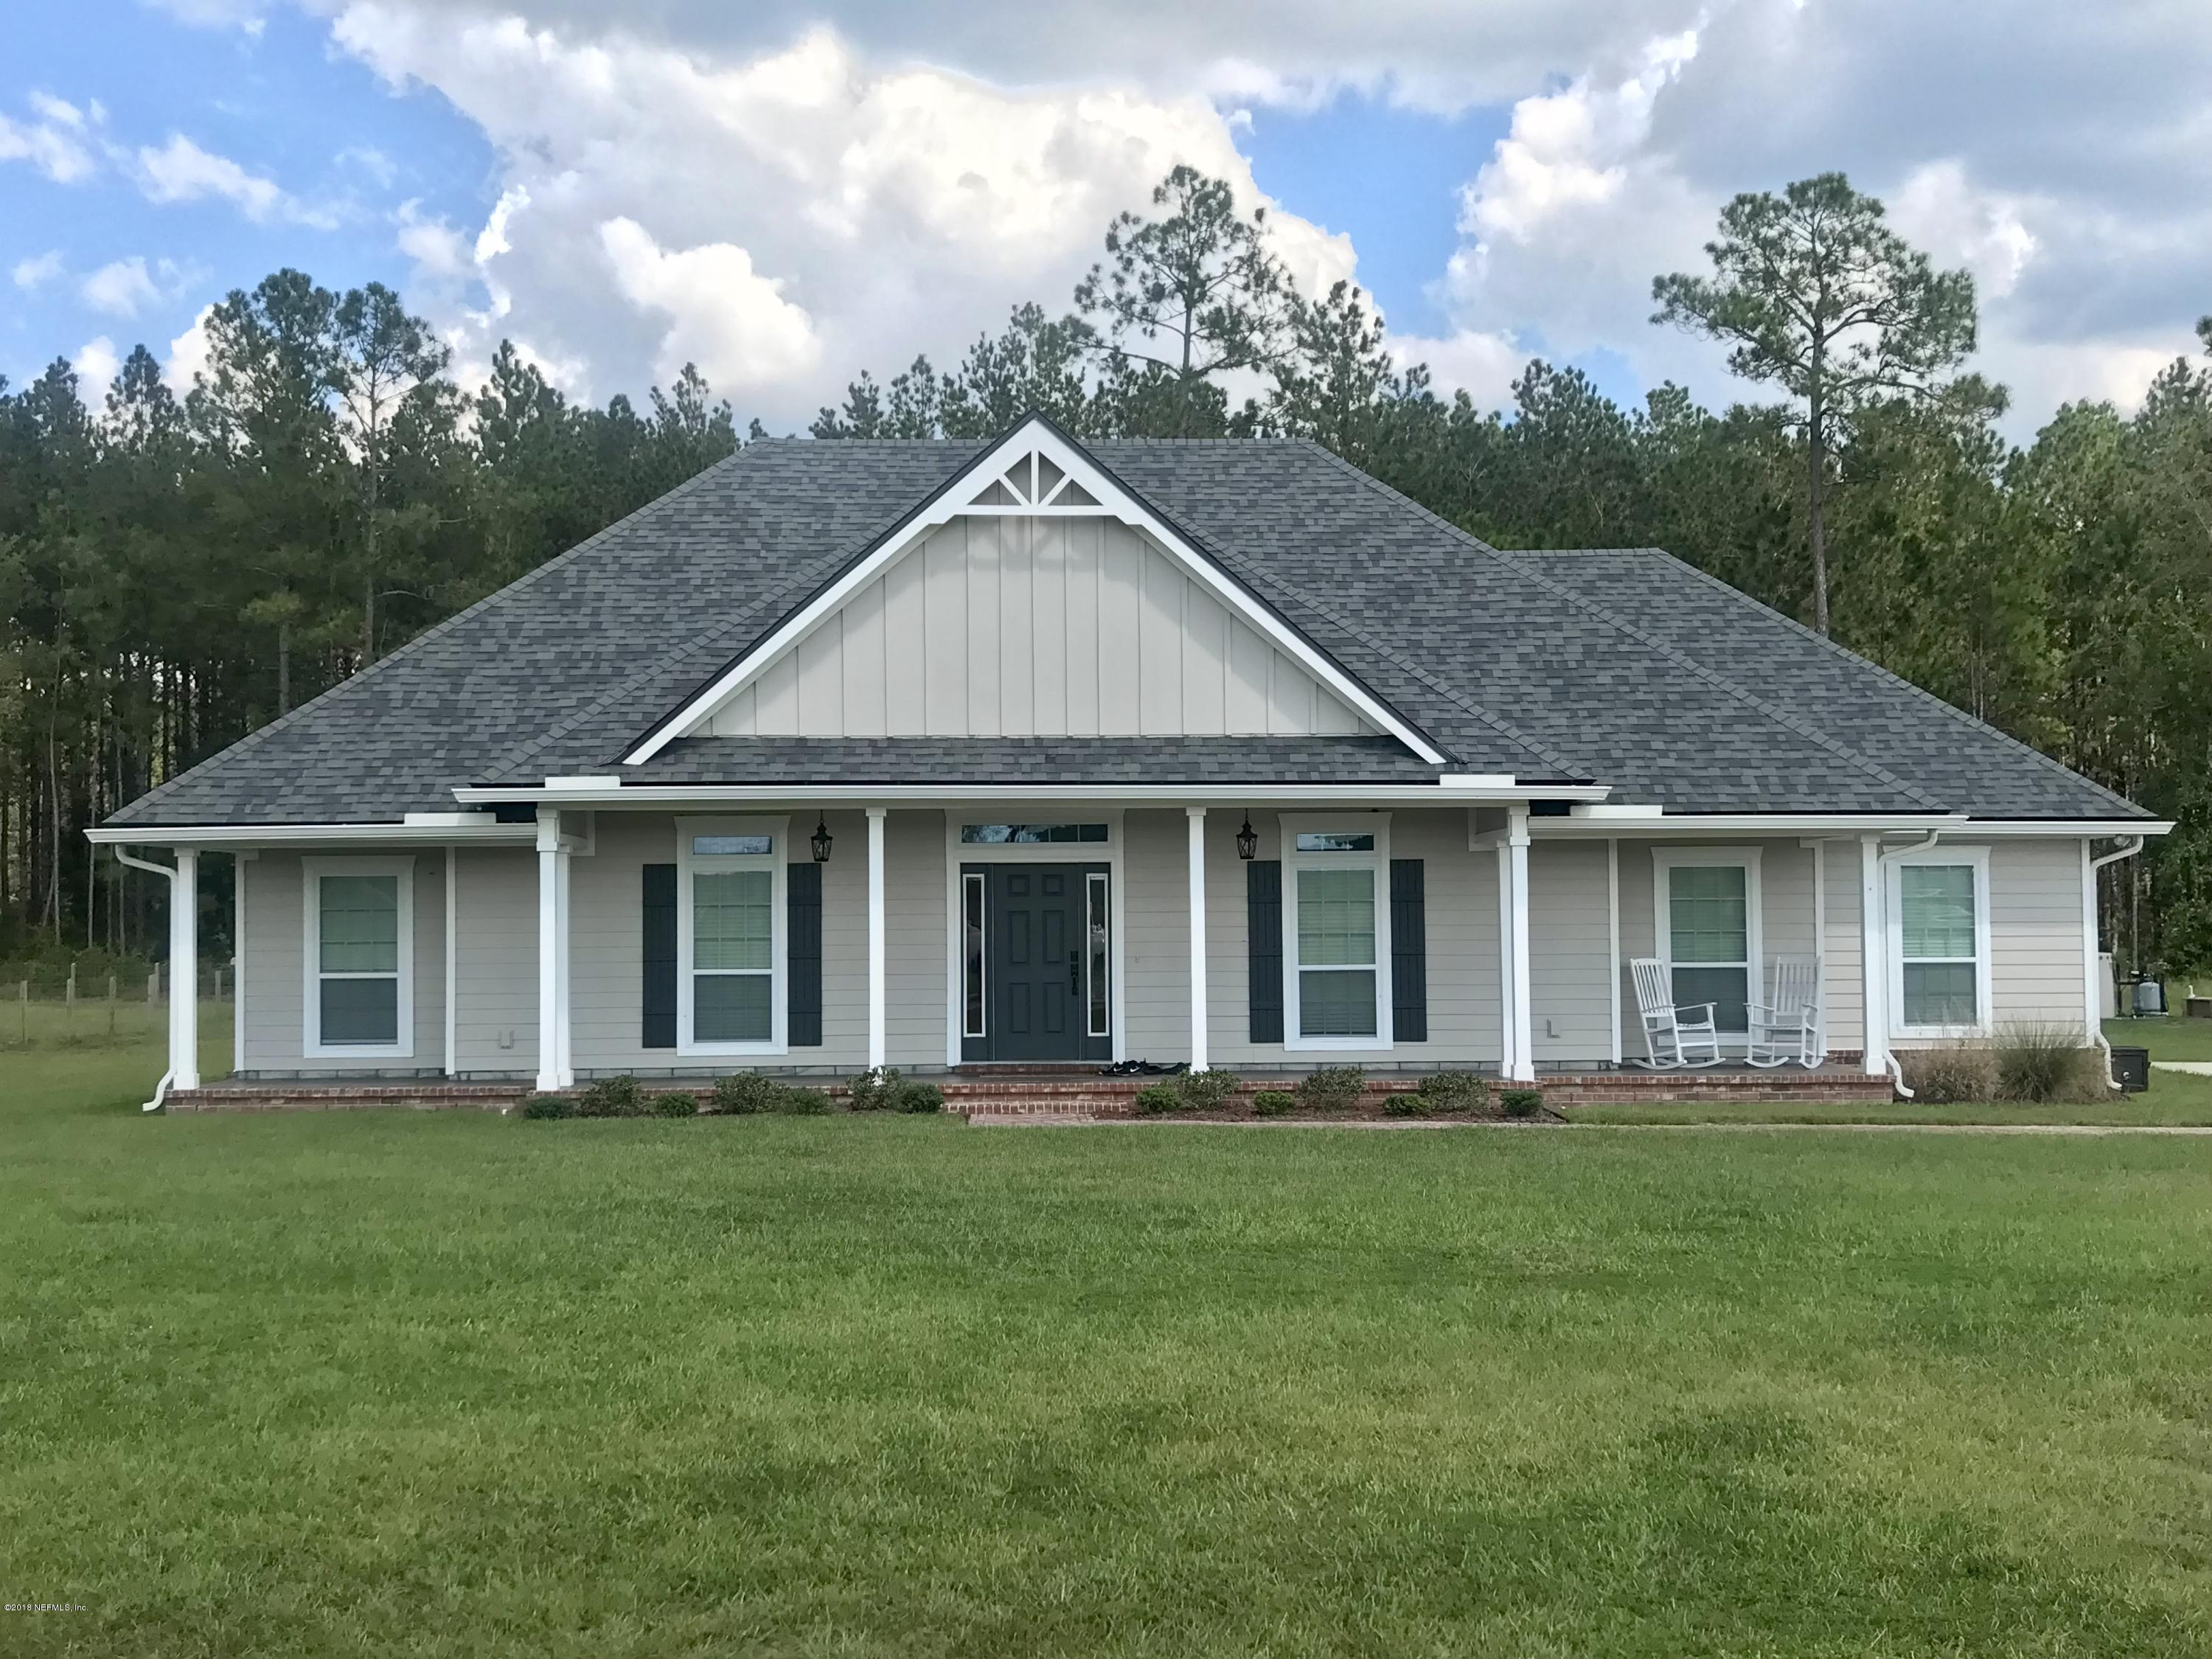 66110 ROCKING HORSE, CALLAHAN, FLORIDA 32011, 3 Bedrooms Bedrooms, ,3 BathroomsBathrooms,Residential - single family,For sale,ROCKING HORSE,892791